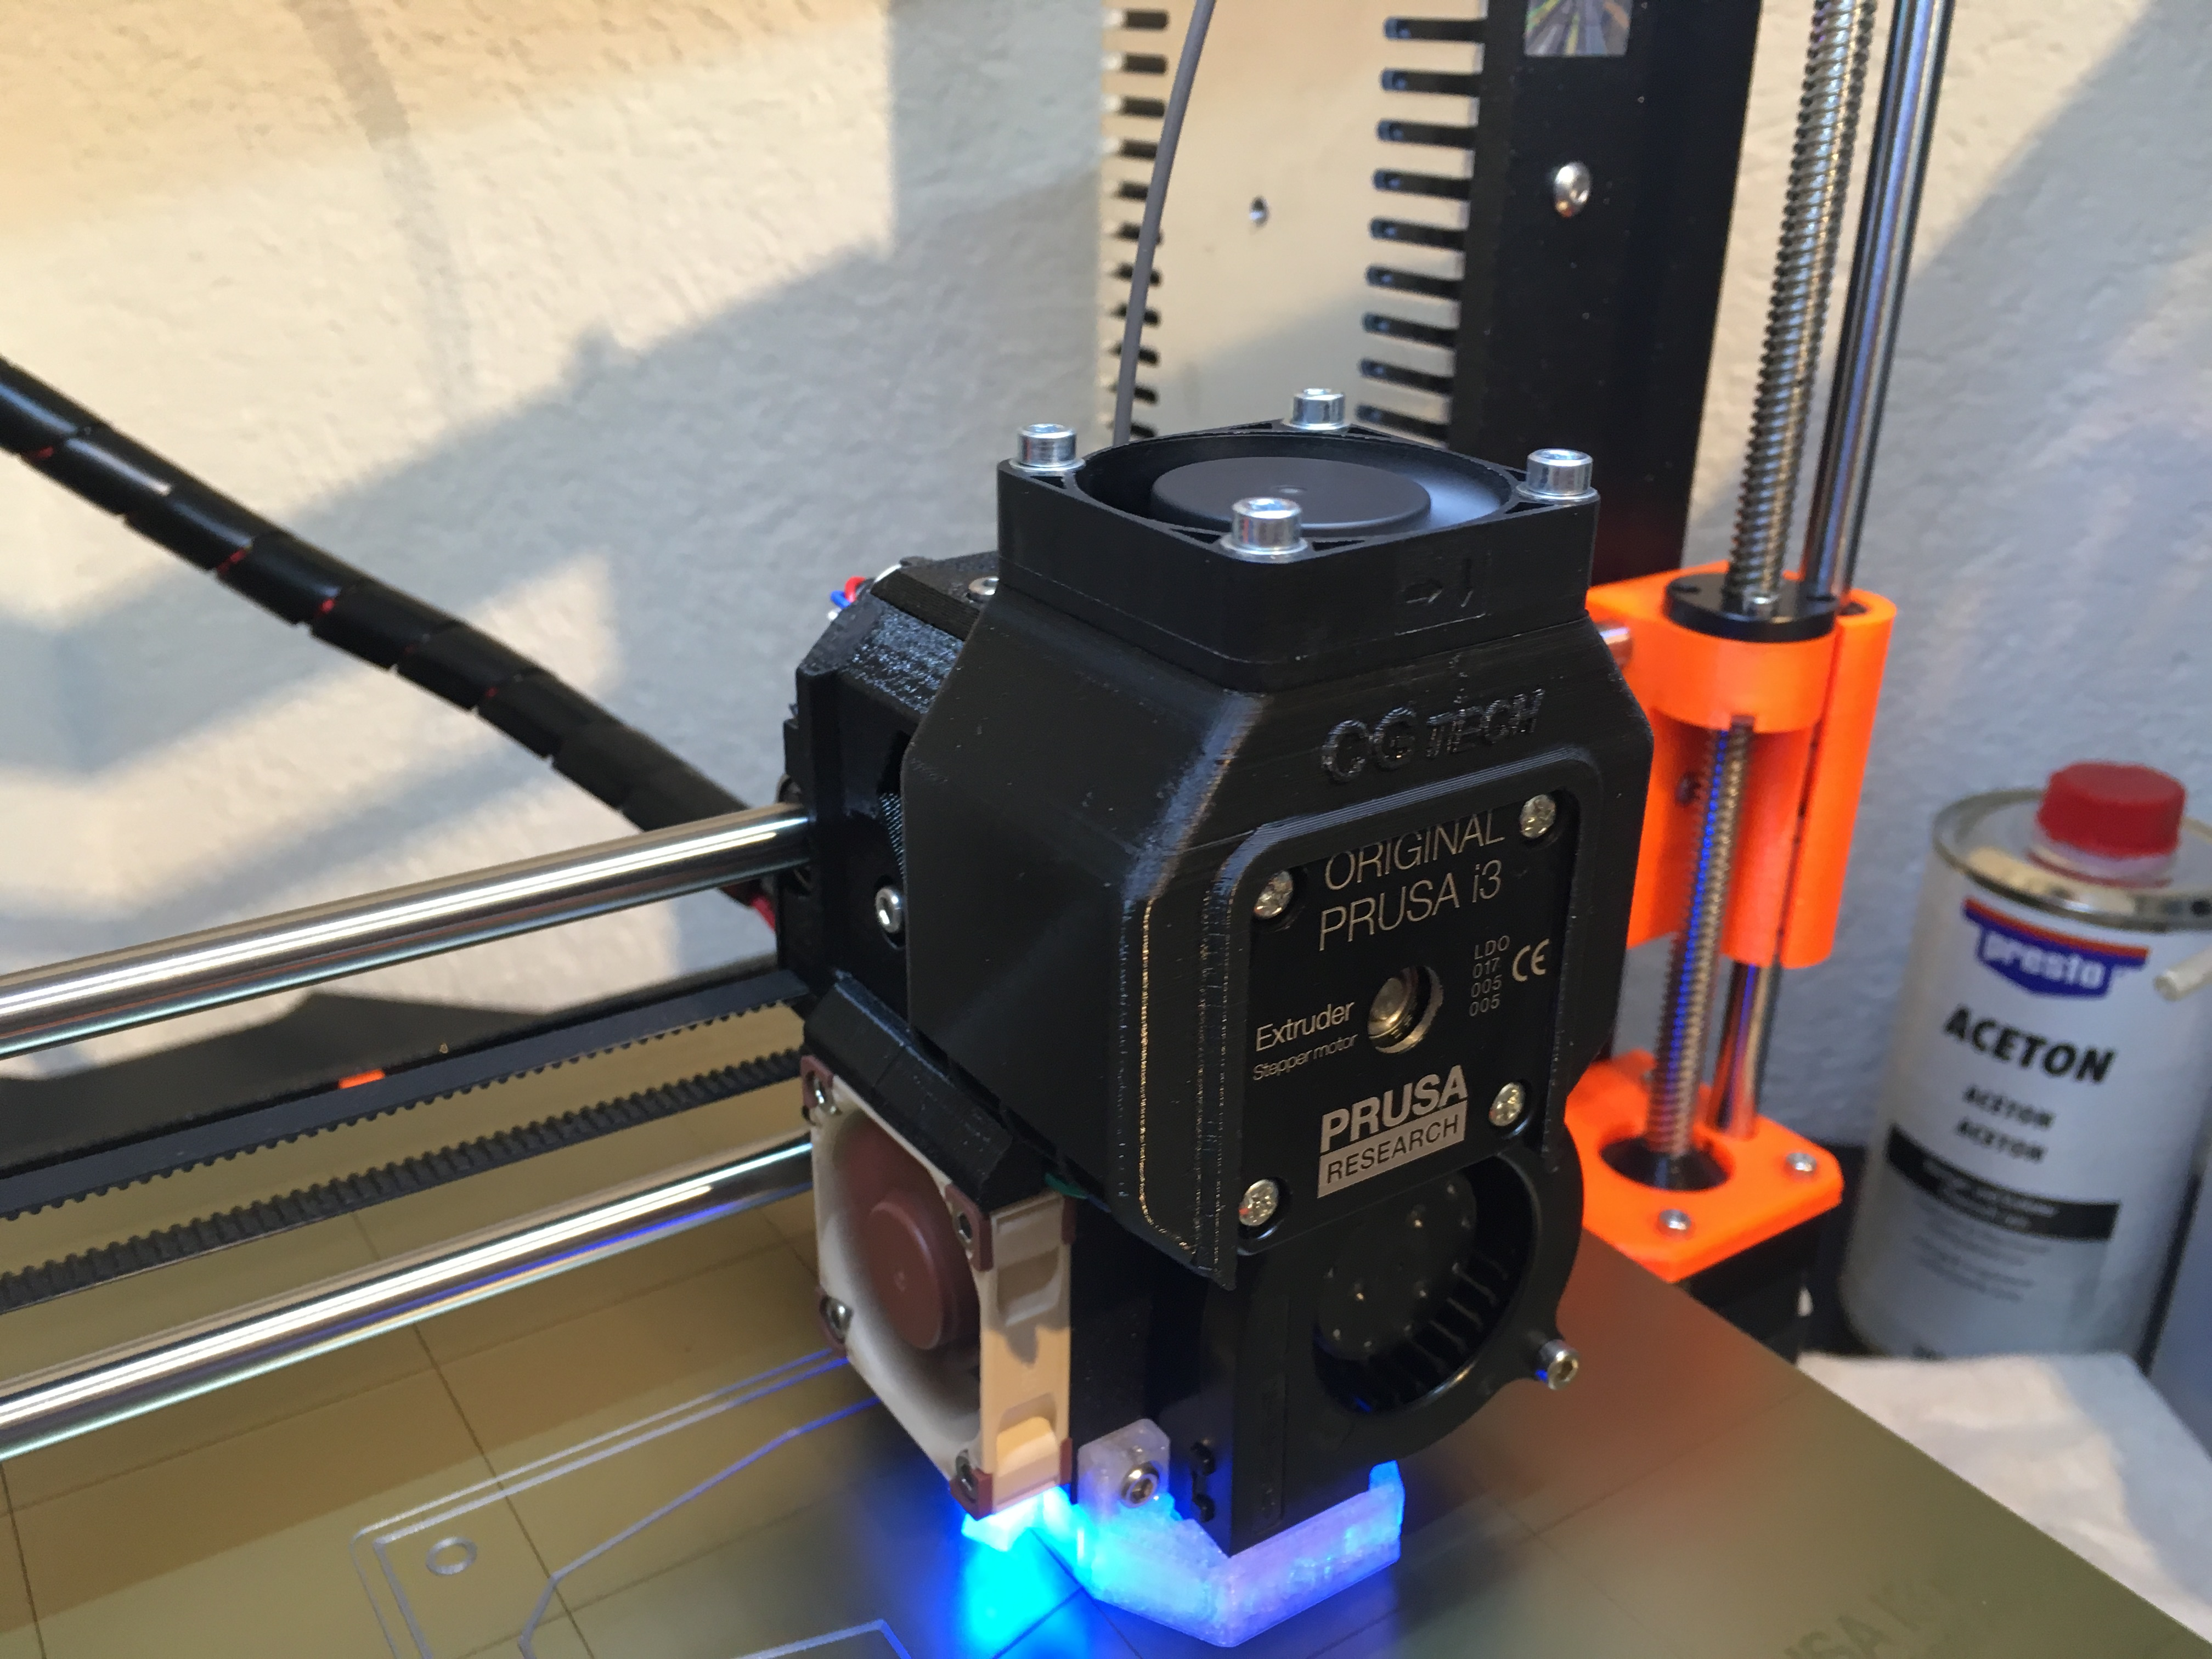 Prusa i3 MK3 Extruder Stepper cooler by CG-Tech - Thingiverse